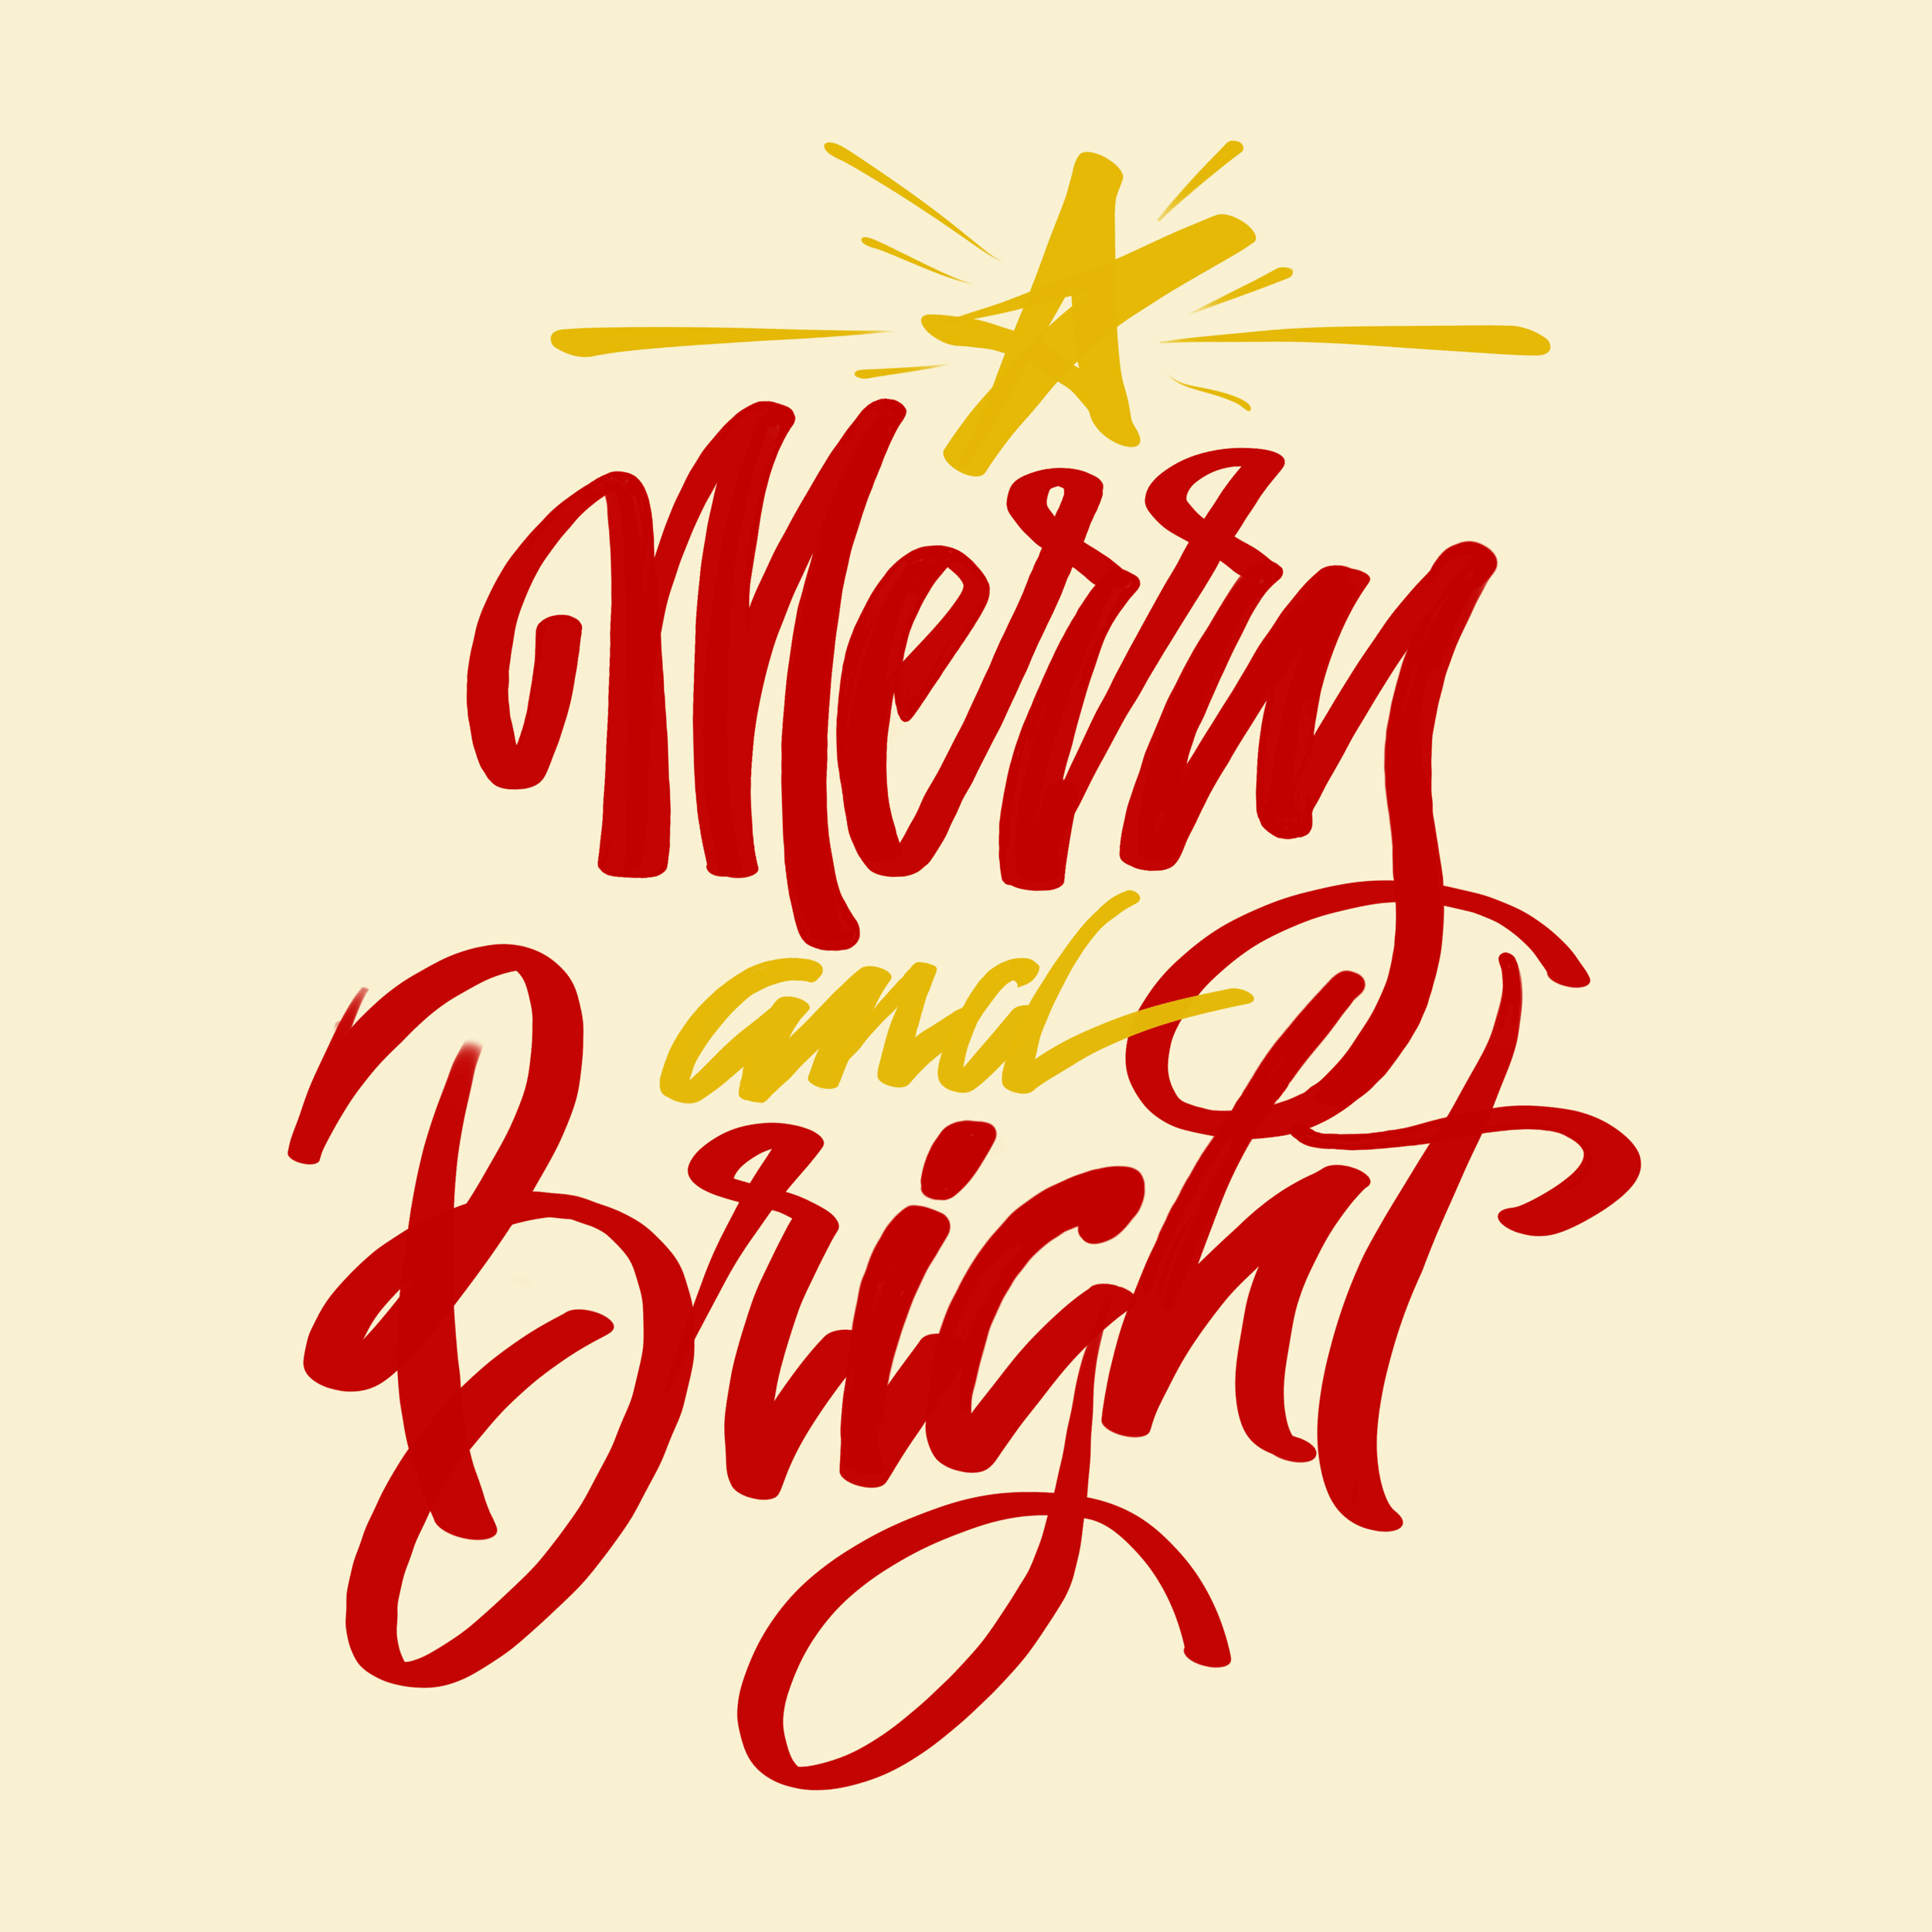 merry and bright john suder.png